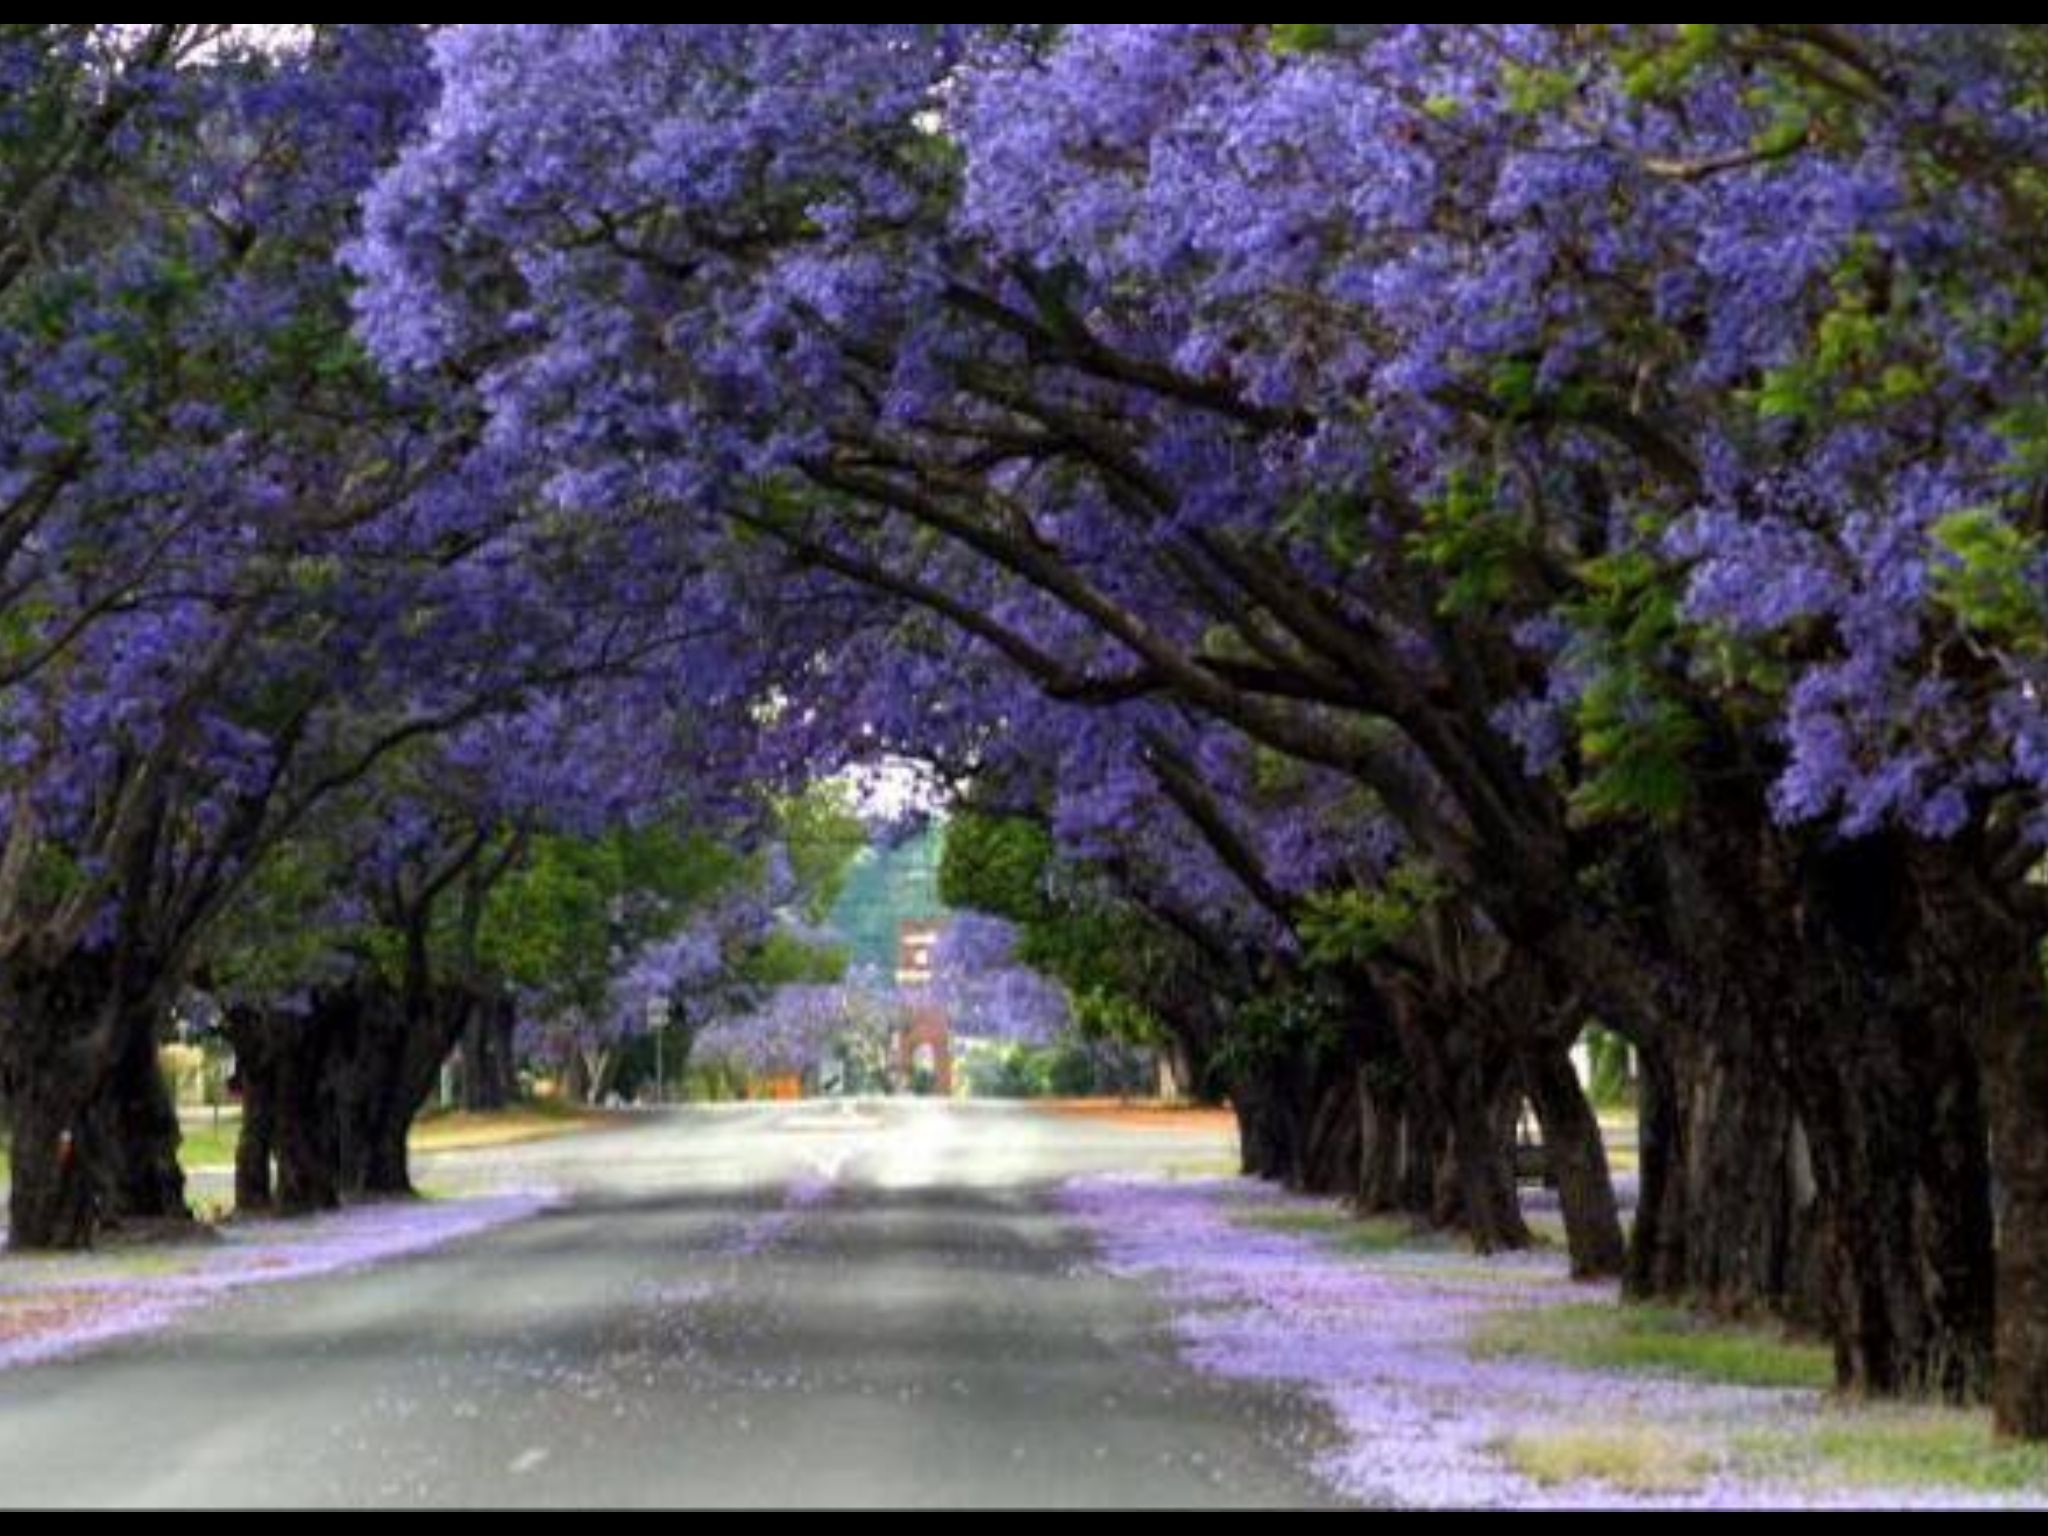 Australia S Answer To Cherry Blossom Season Has Arrived As Pockets Of The Country Burst Into Bloom With Jacar Flower Landscape Jacaranda Tree Beautiful Gardens